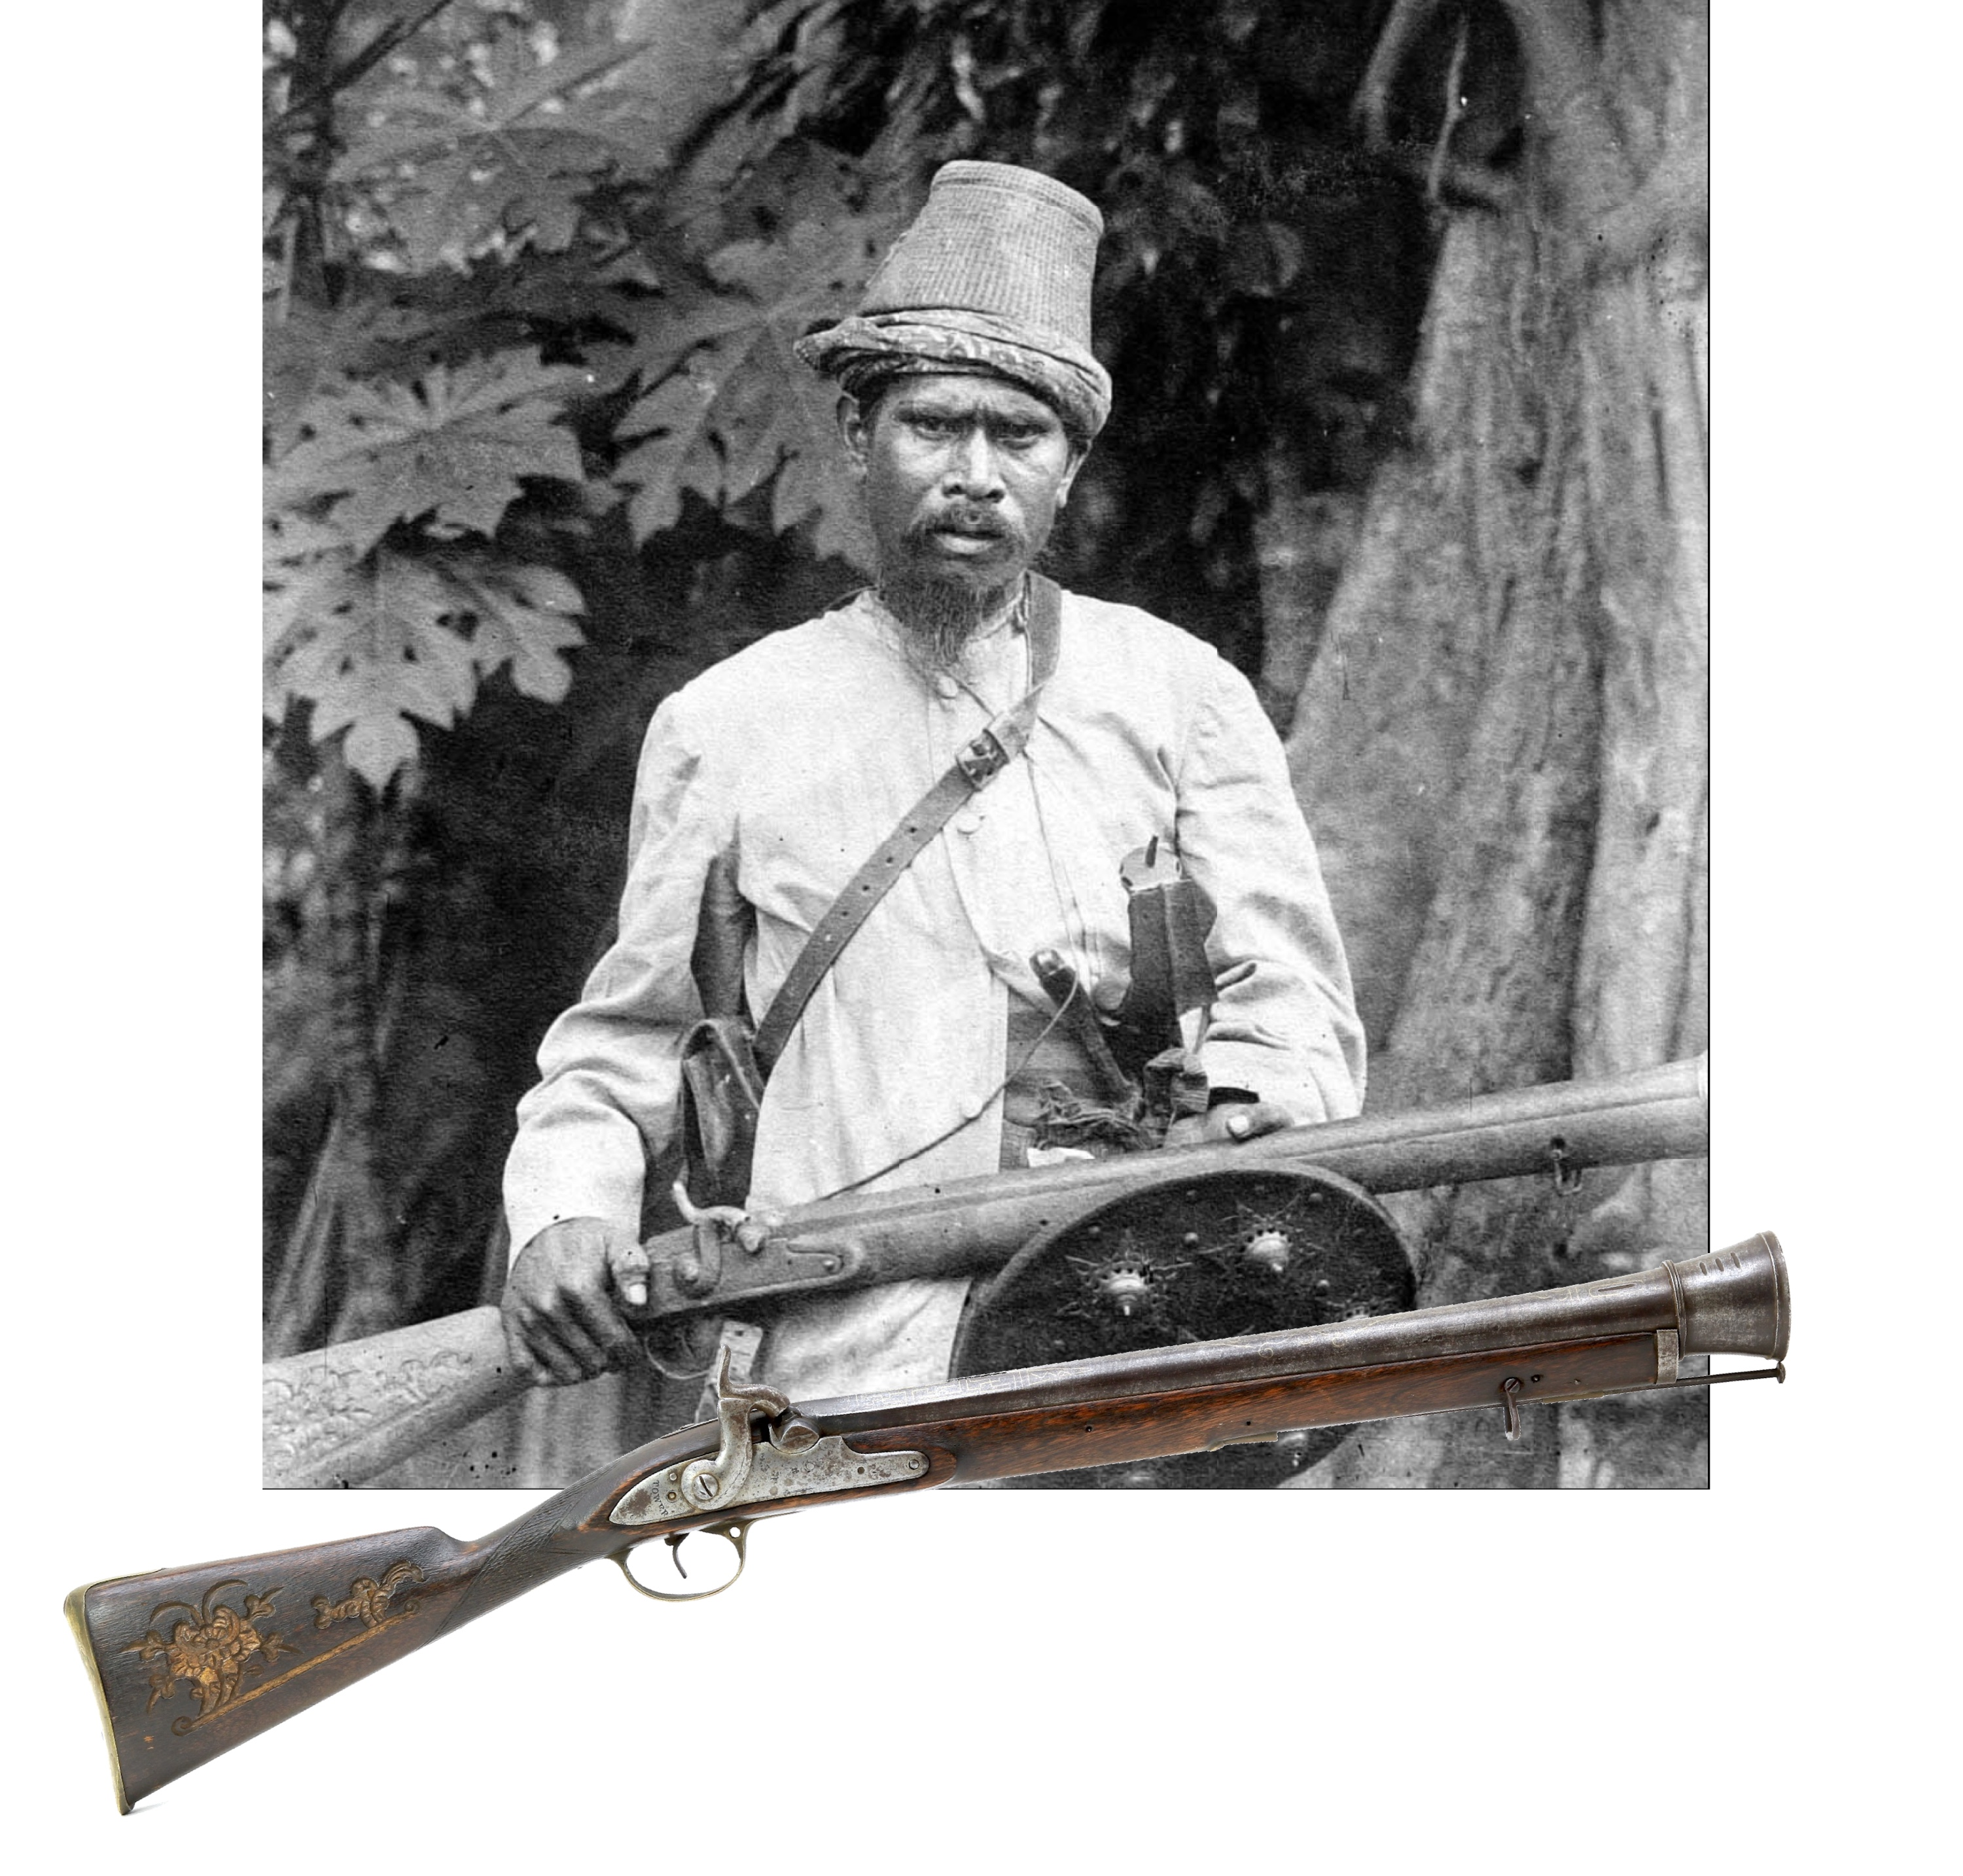 Aceh warrior with blunderbuss